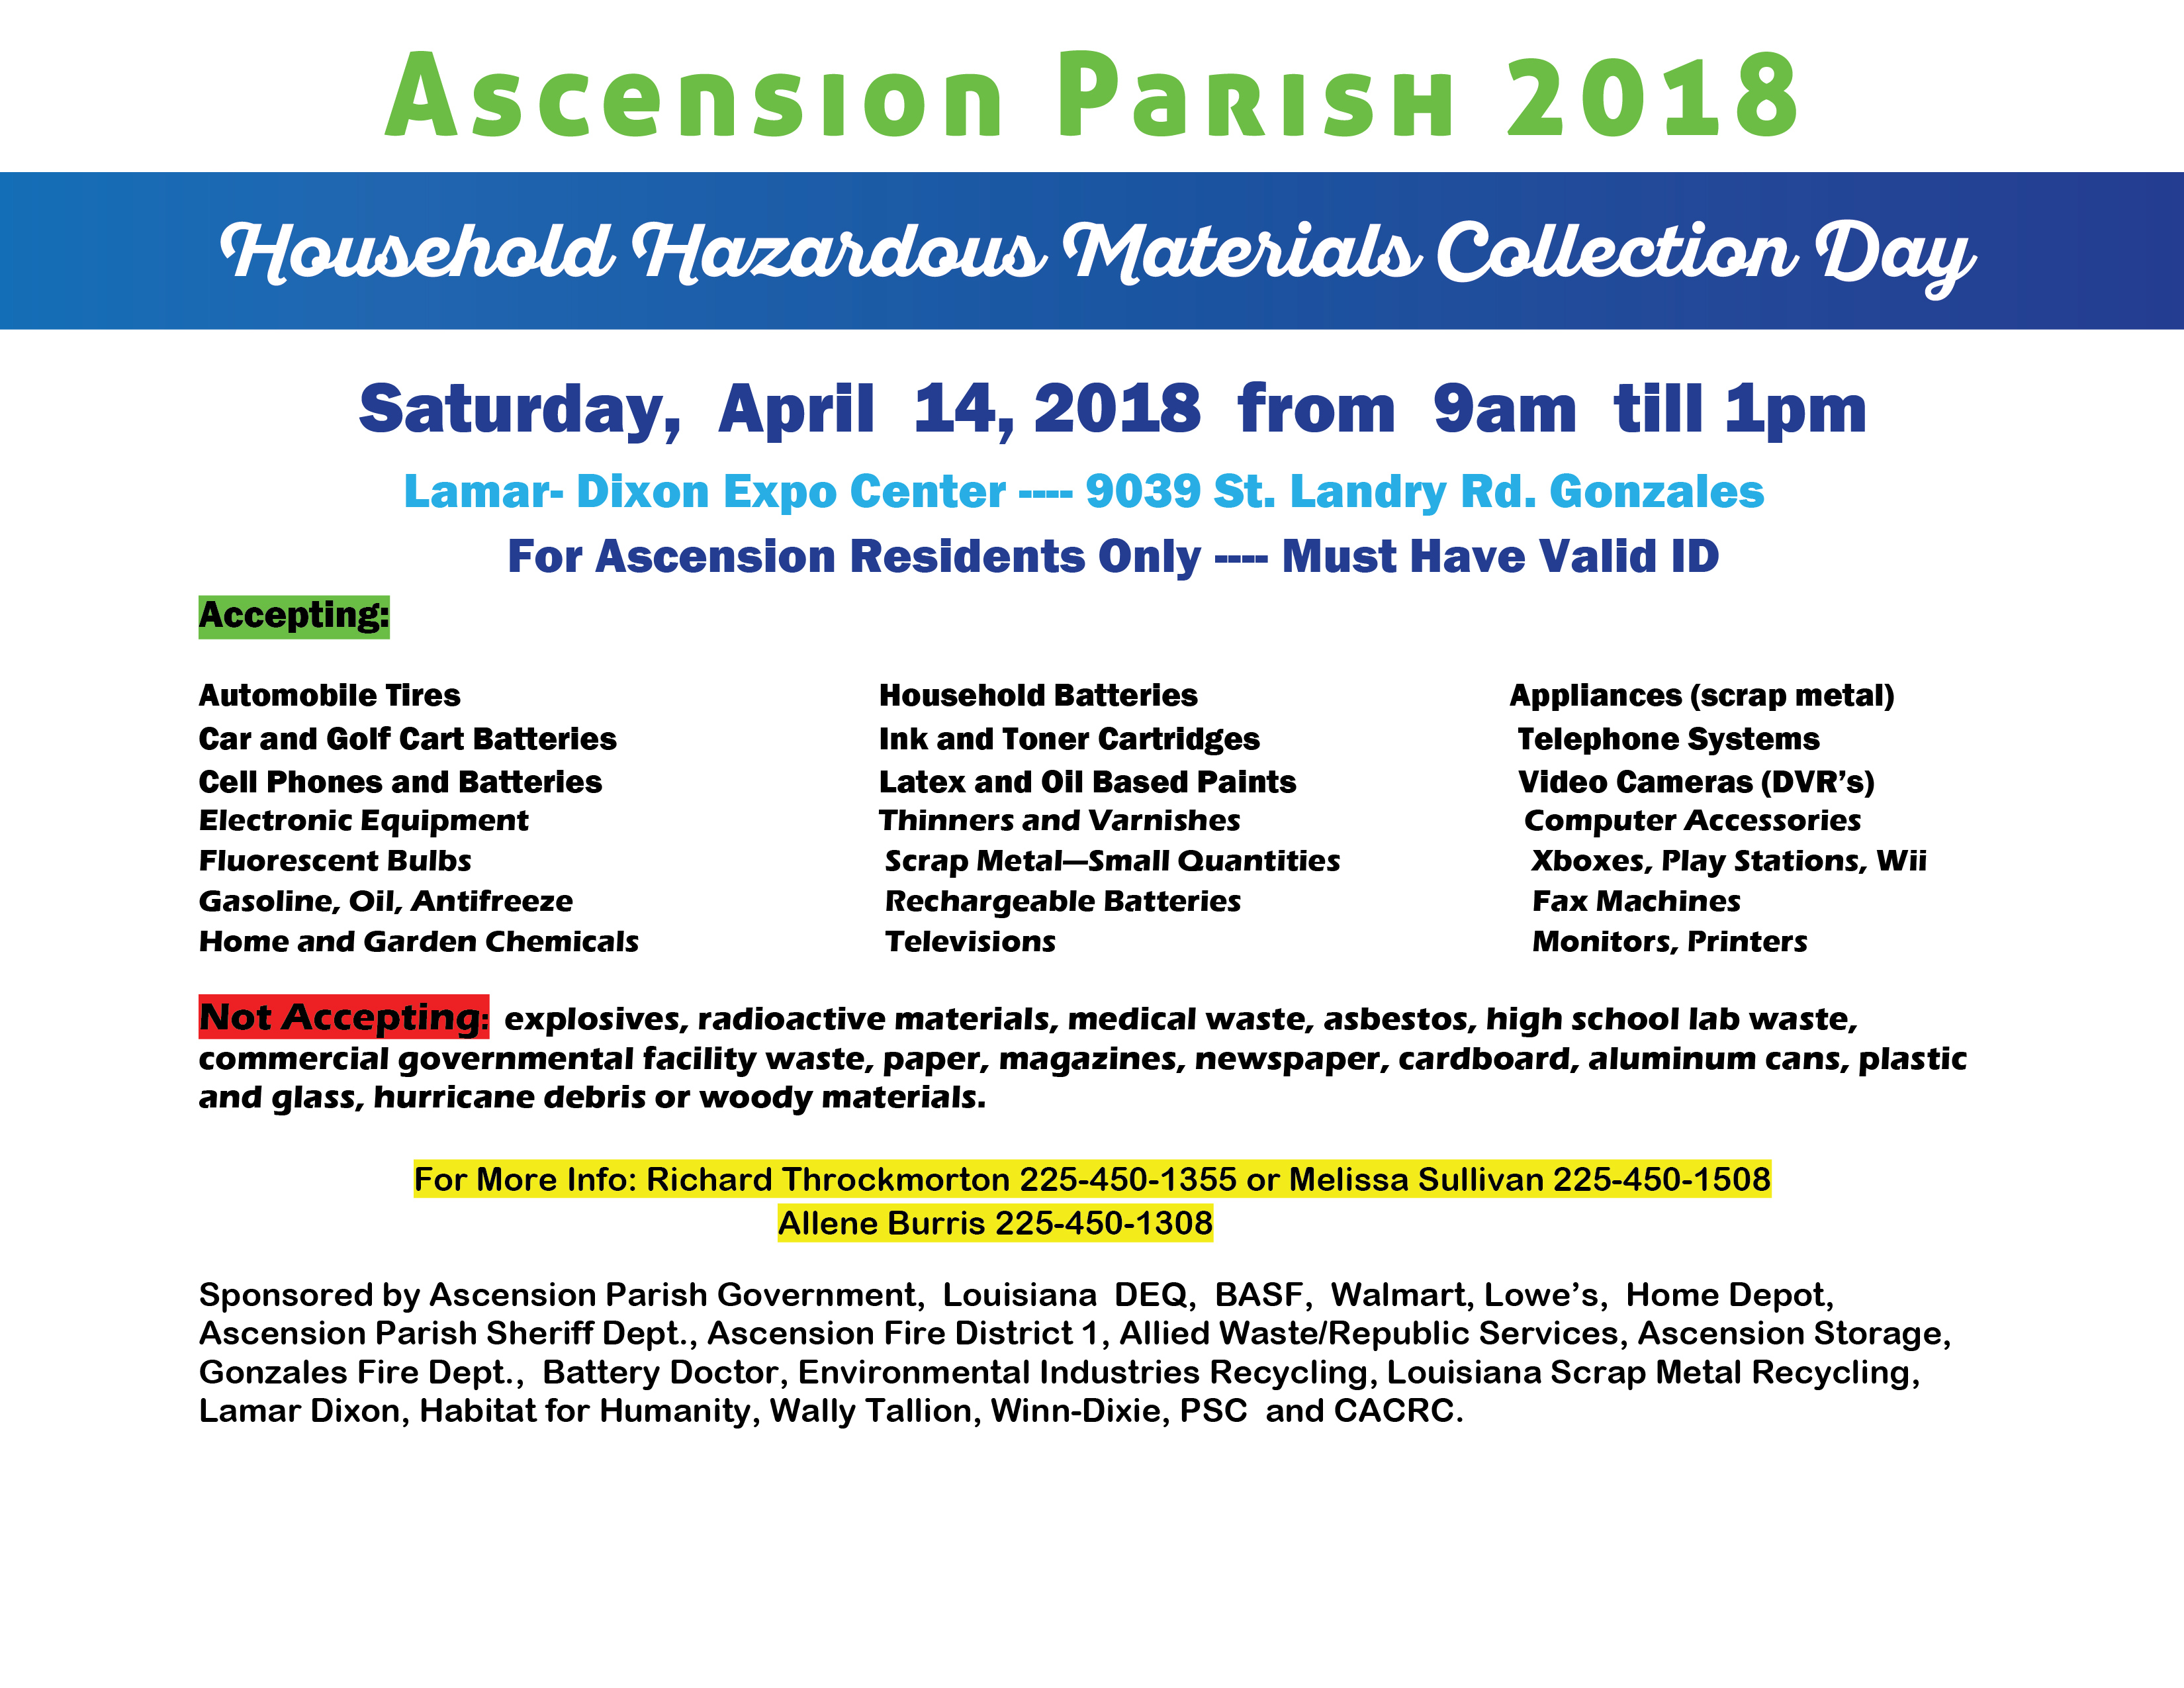 Ascension Parish Official Website Of Ascension Parish Government - Free invoice templates pdf american girl doll store online